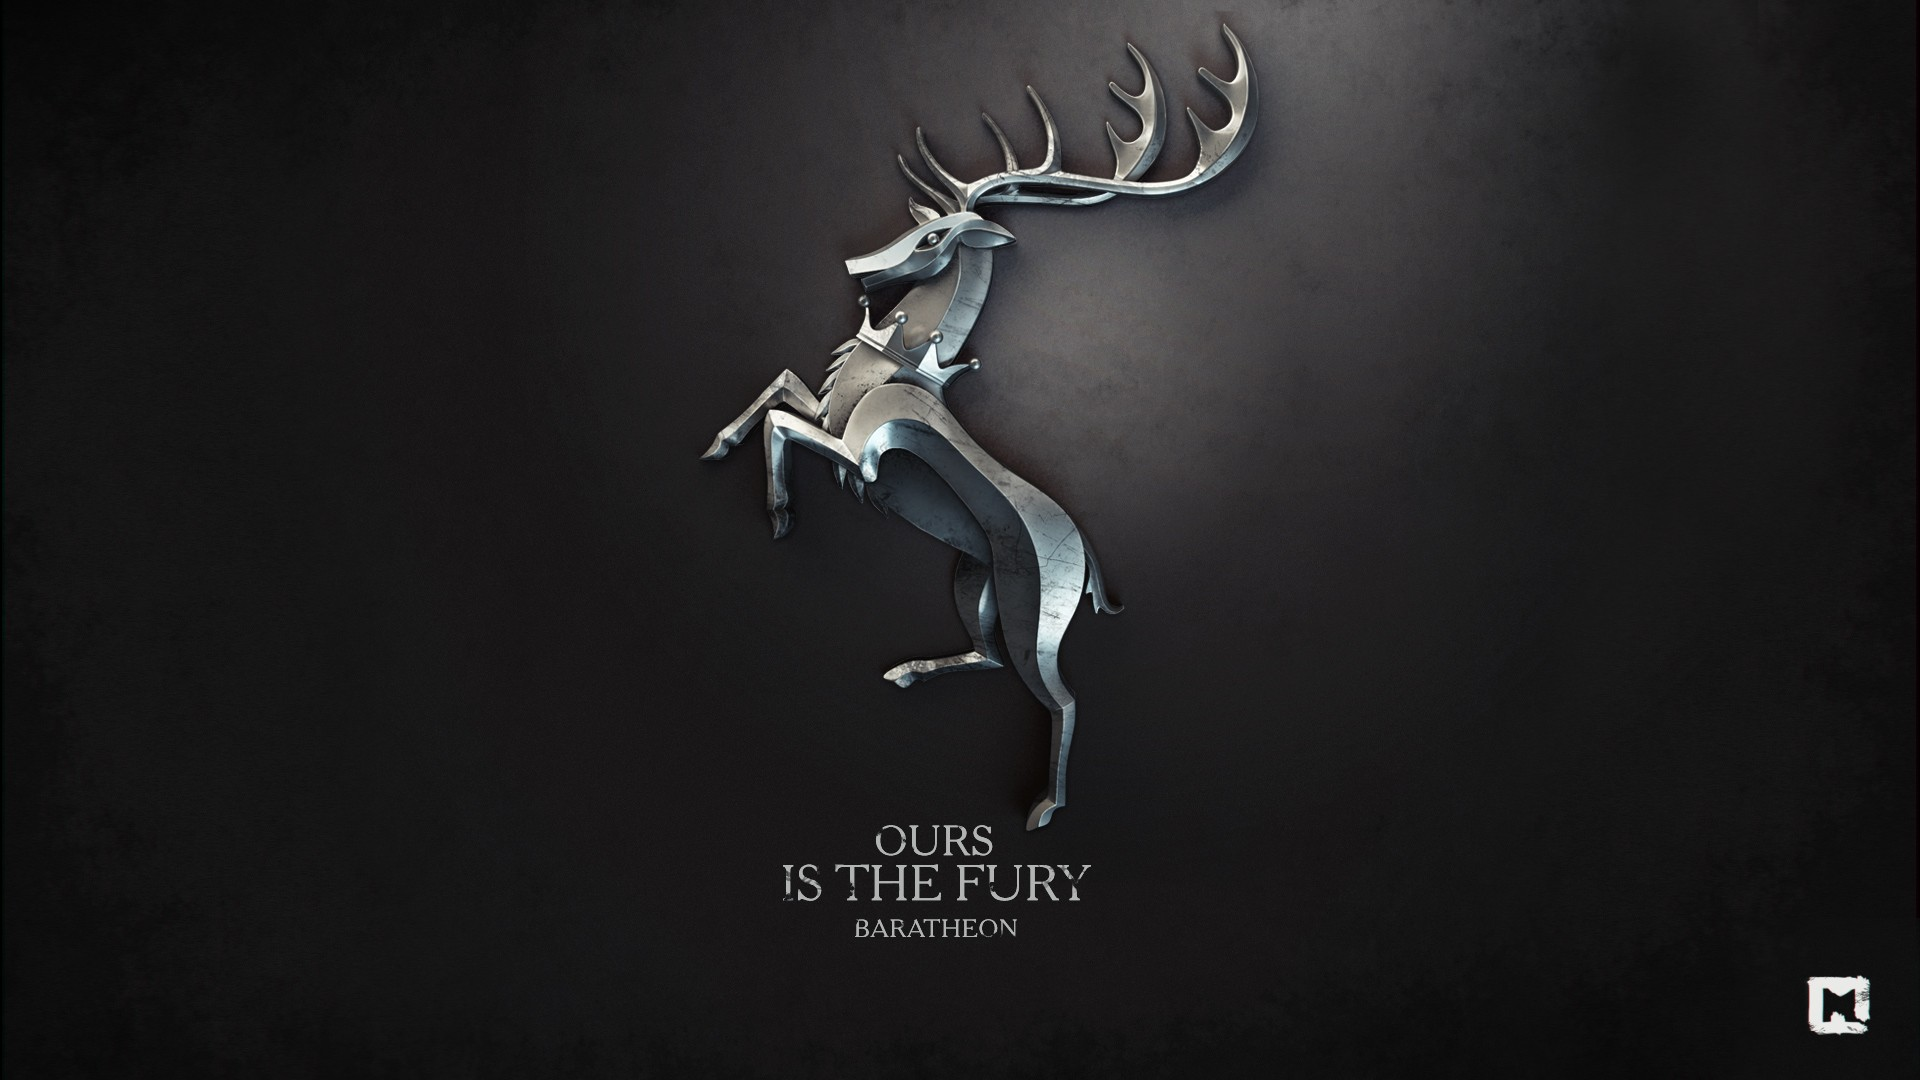 ours is the fury baratheon game of thrones wallpaper - hd wallpapers